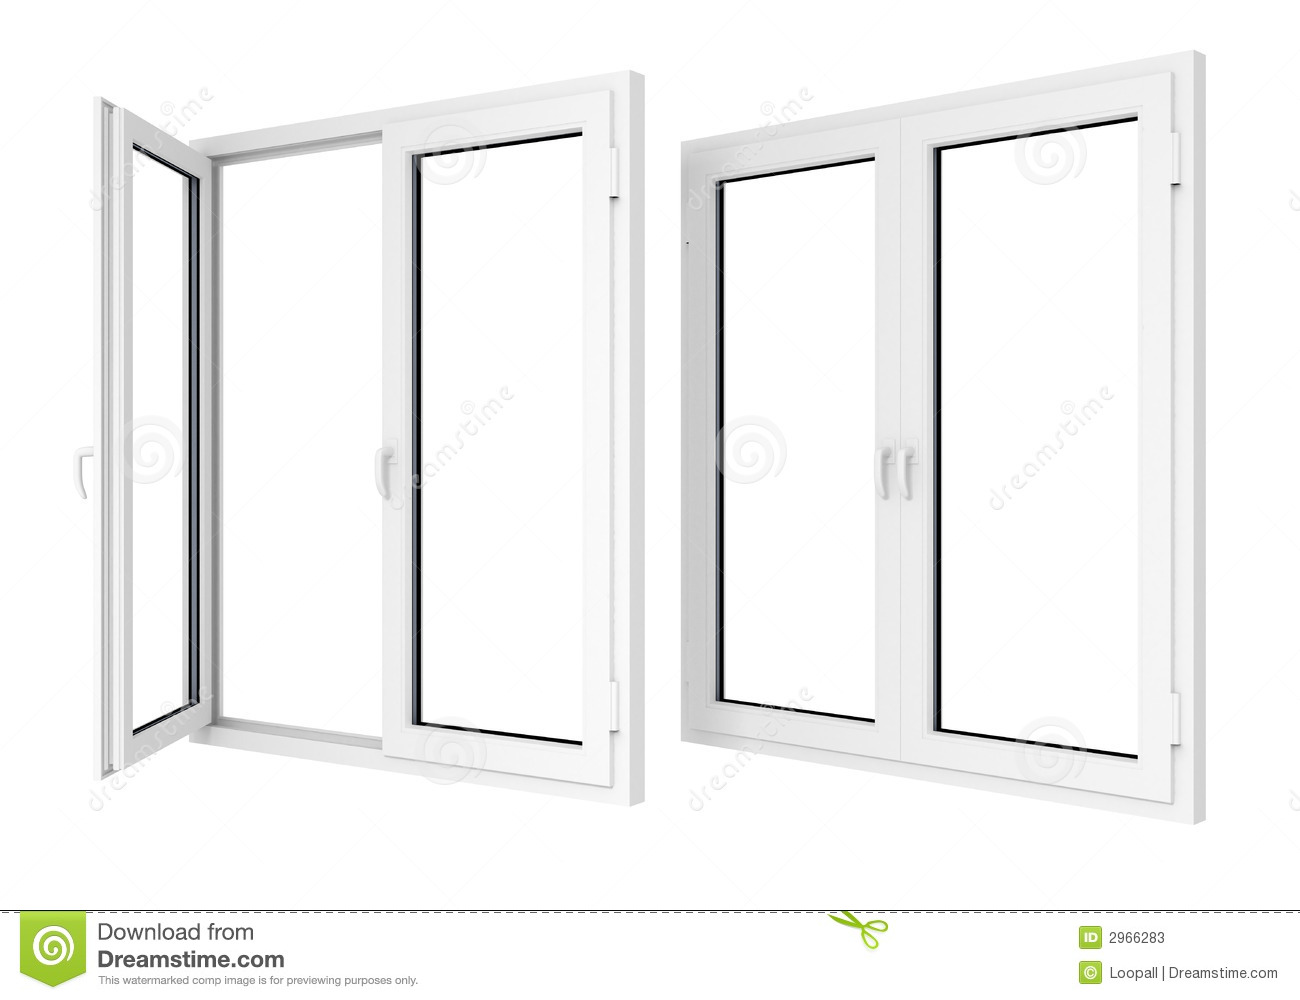 Plastic windows stock photos image 2966283 for Window plastic